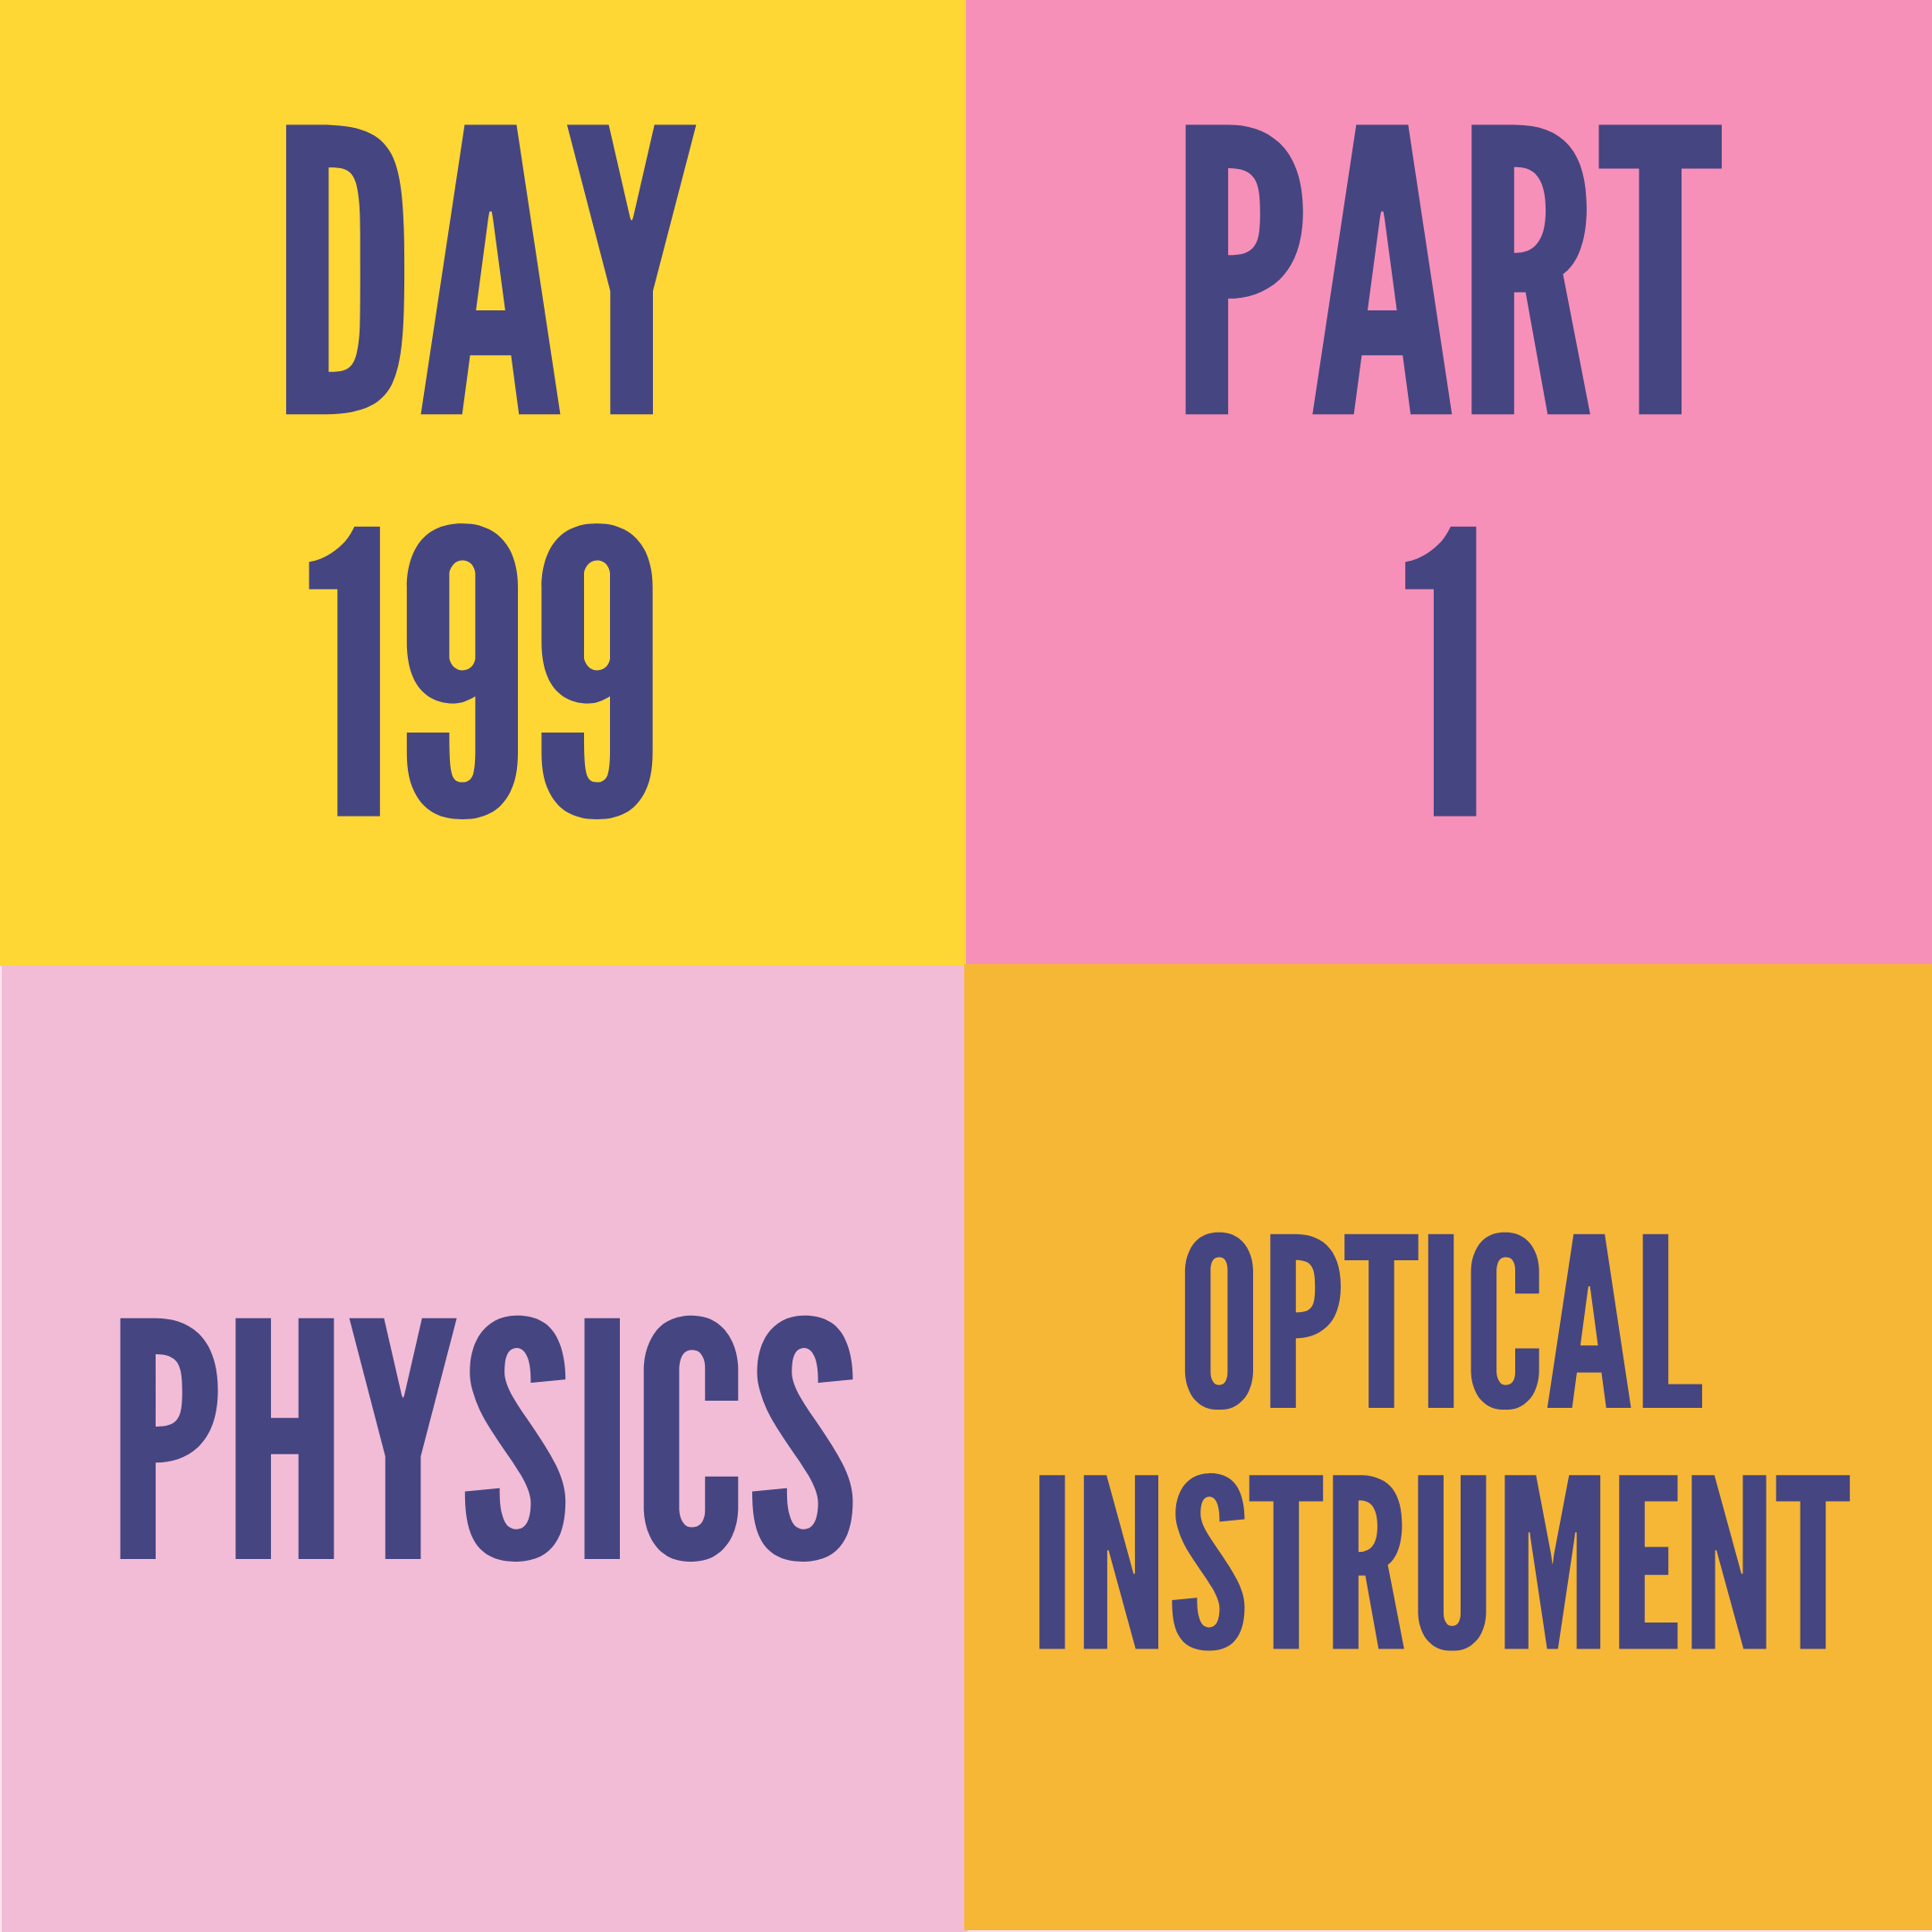 DAY-199 PART-1 (TARGET)OPTICAL INSTRUMENT